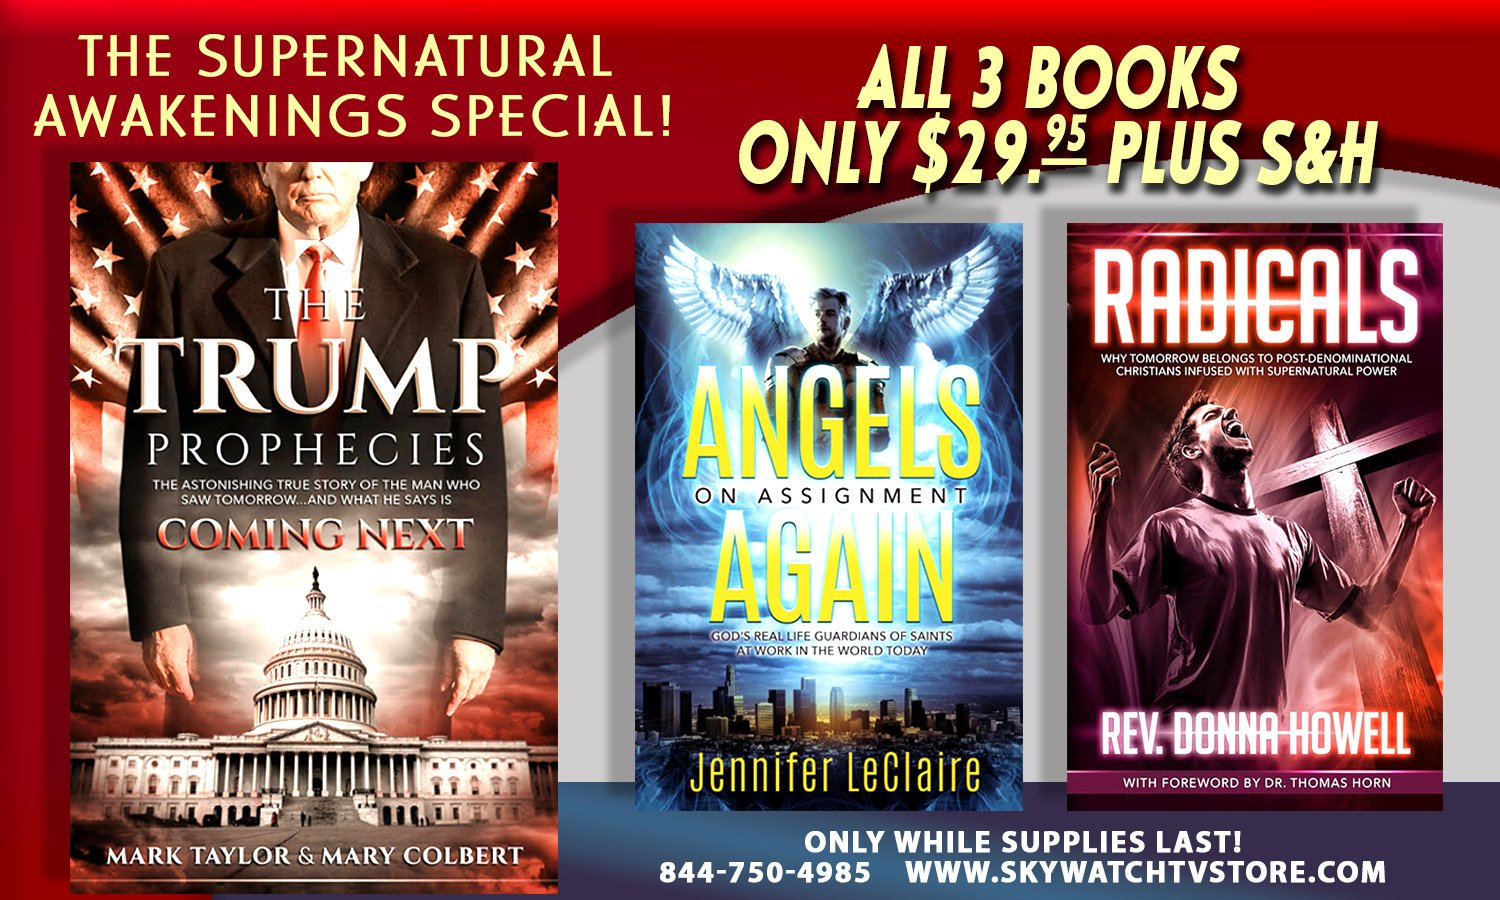 THE WORLD IS NOT READY FOR WHAT THE FIREMAN SAYS IS COMING NEXT! WILL YOU BE!? PREORDER THE SUPERNATURAL AWAKENINGS AT A HUGE DISCOUNT AND GET READY FOR STARTLING REVELATIONS!